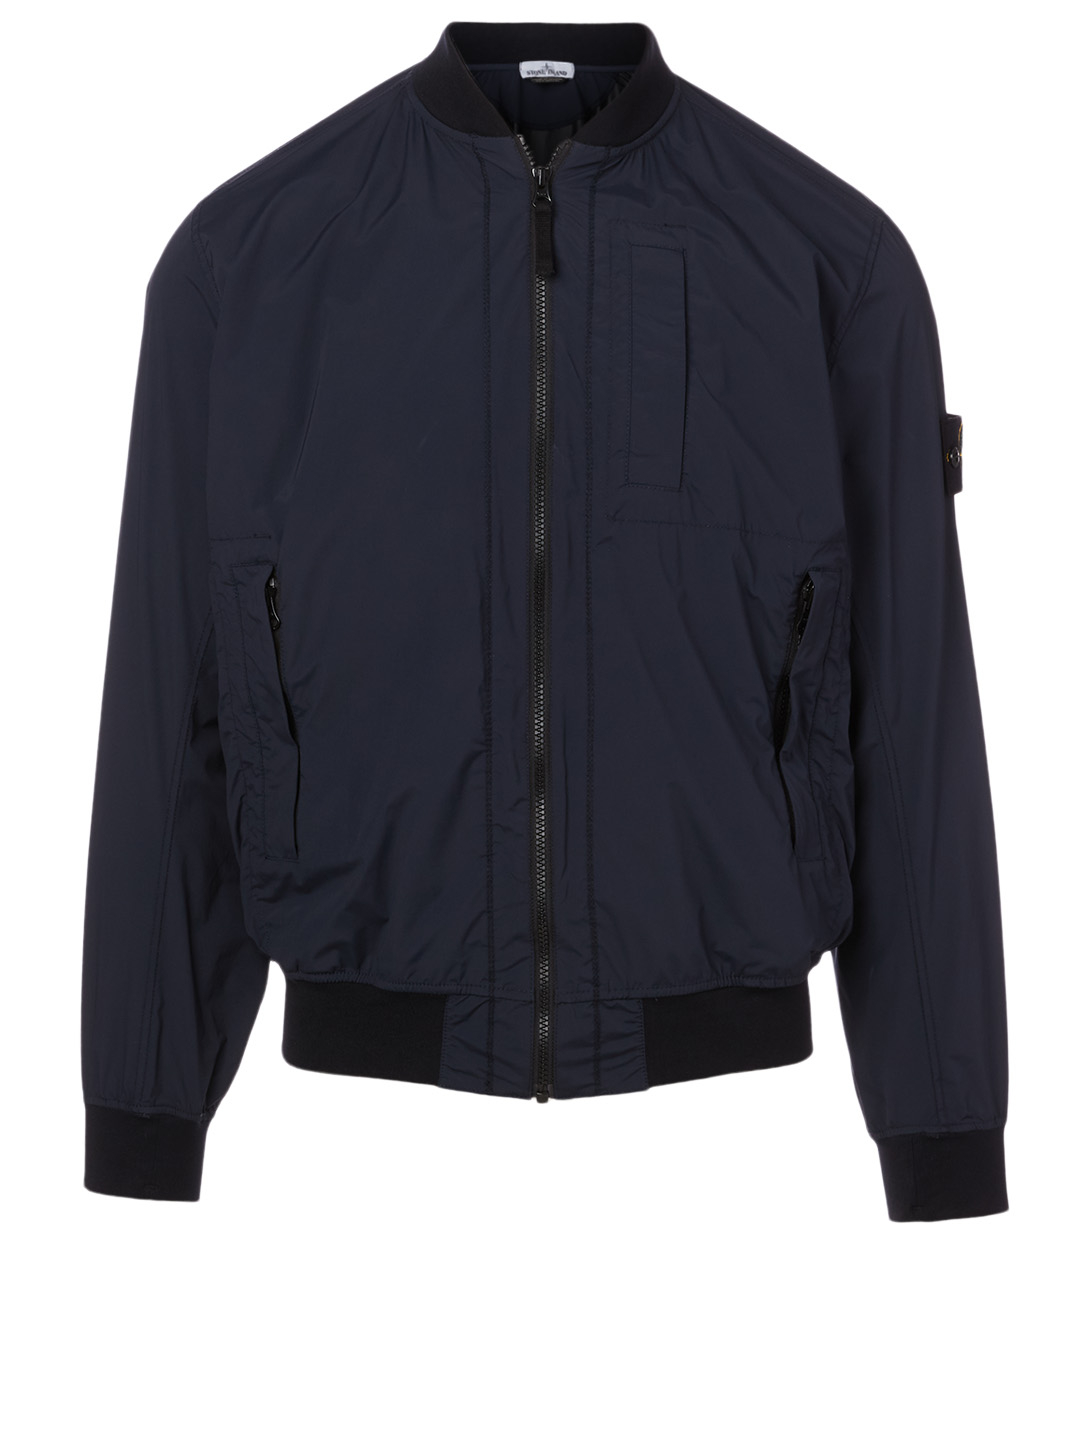 STONE ISLAND Nylon Packable Jacket Men's Blue